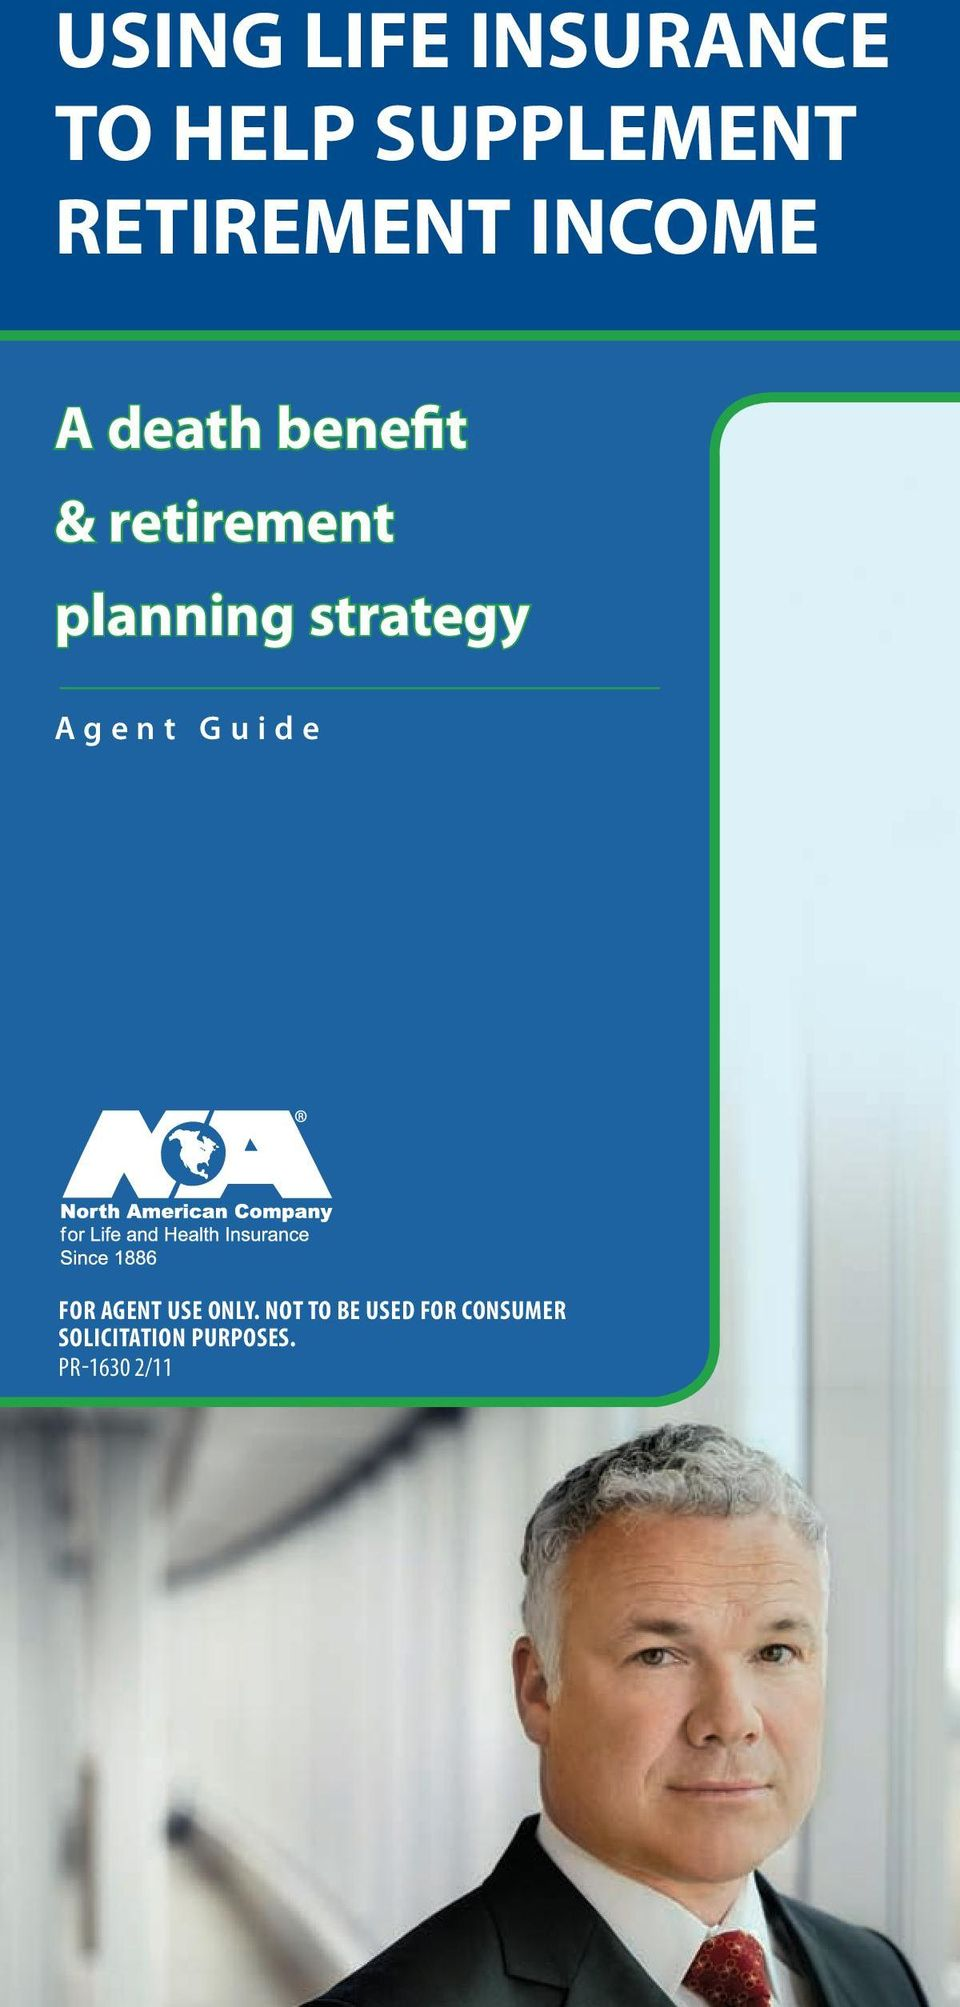 planning strategy Agent Guide For agent use